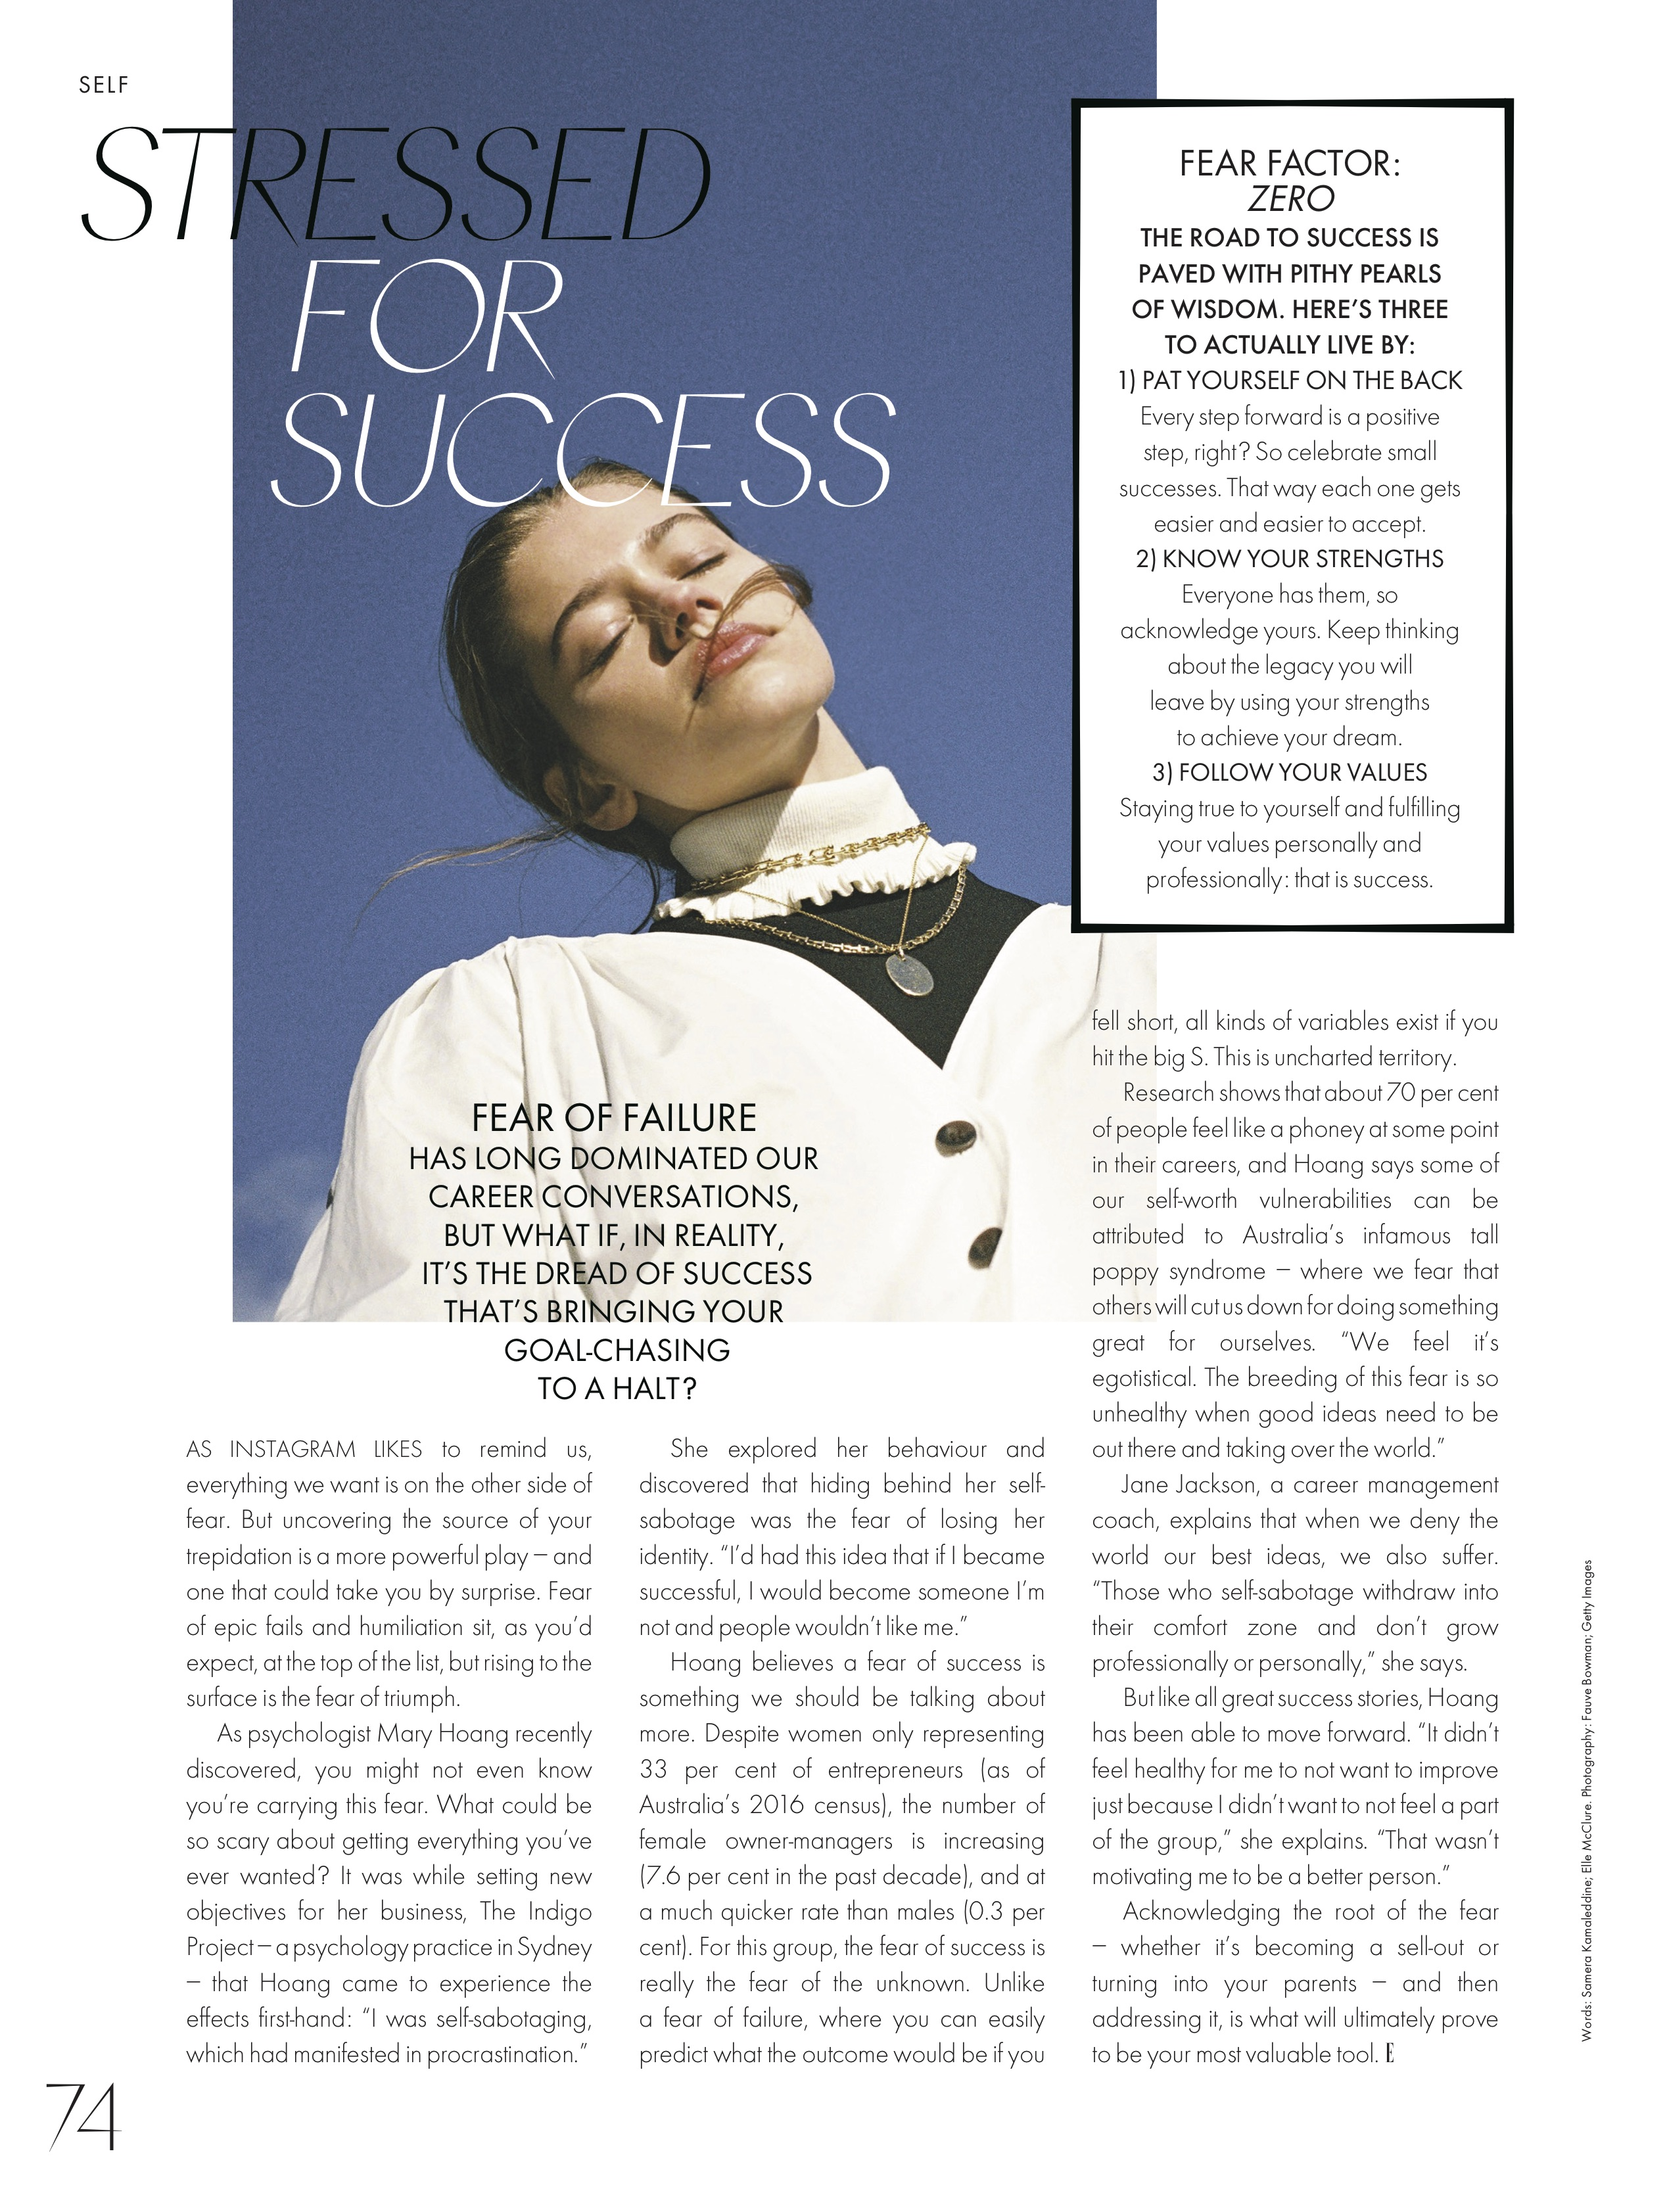 ELLE March 2019: Fear of success